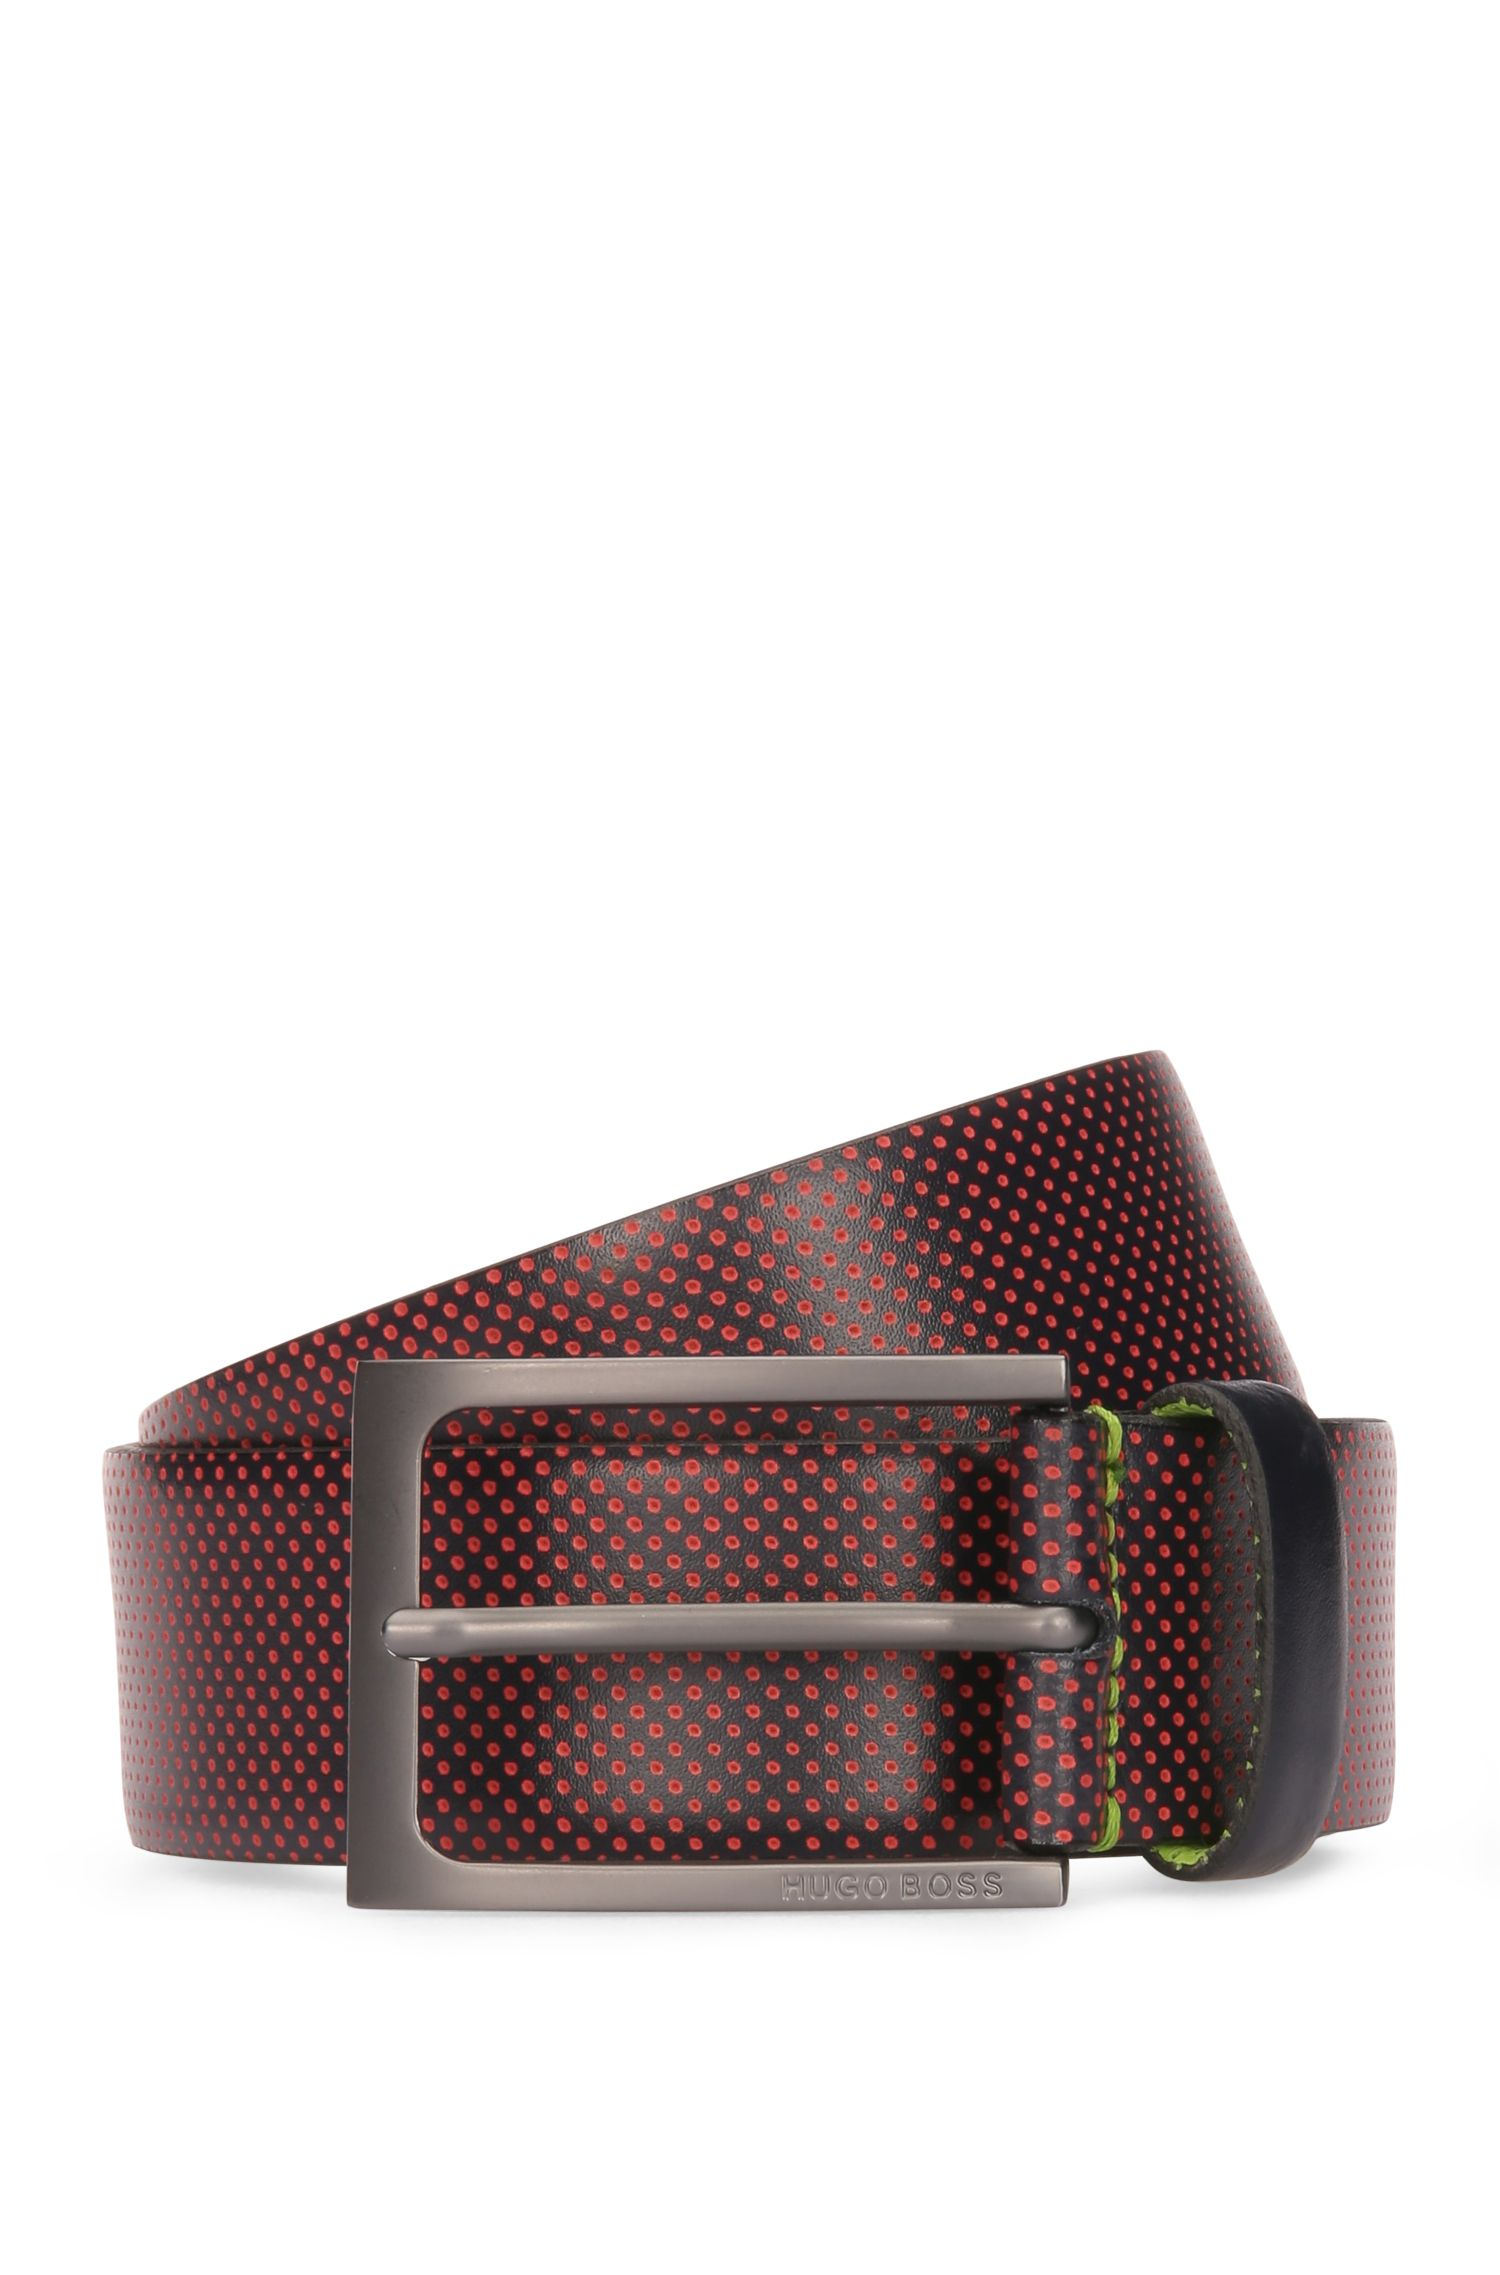 Leather belt with contrast perforations